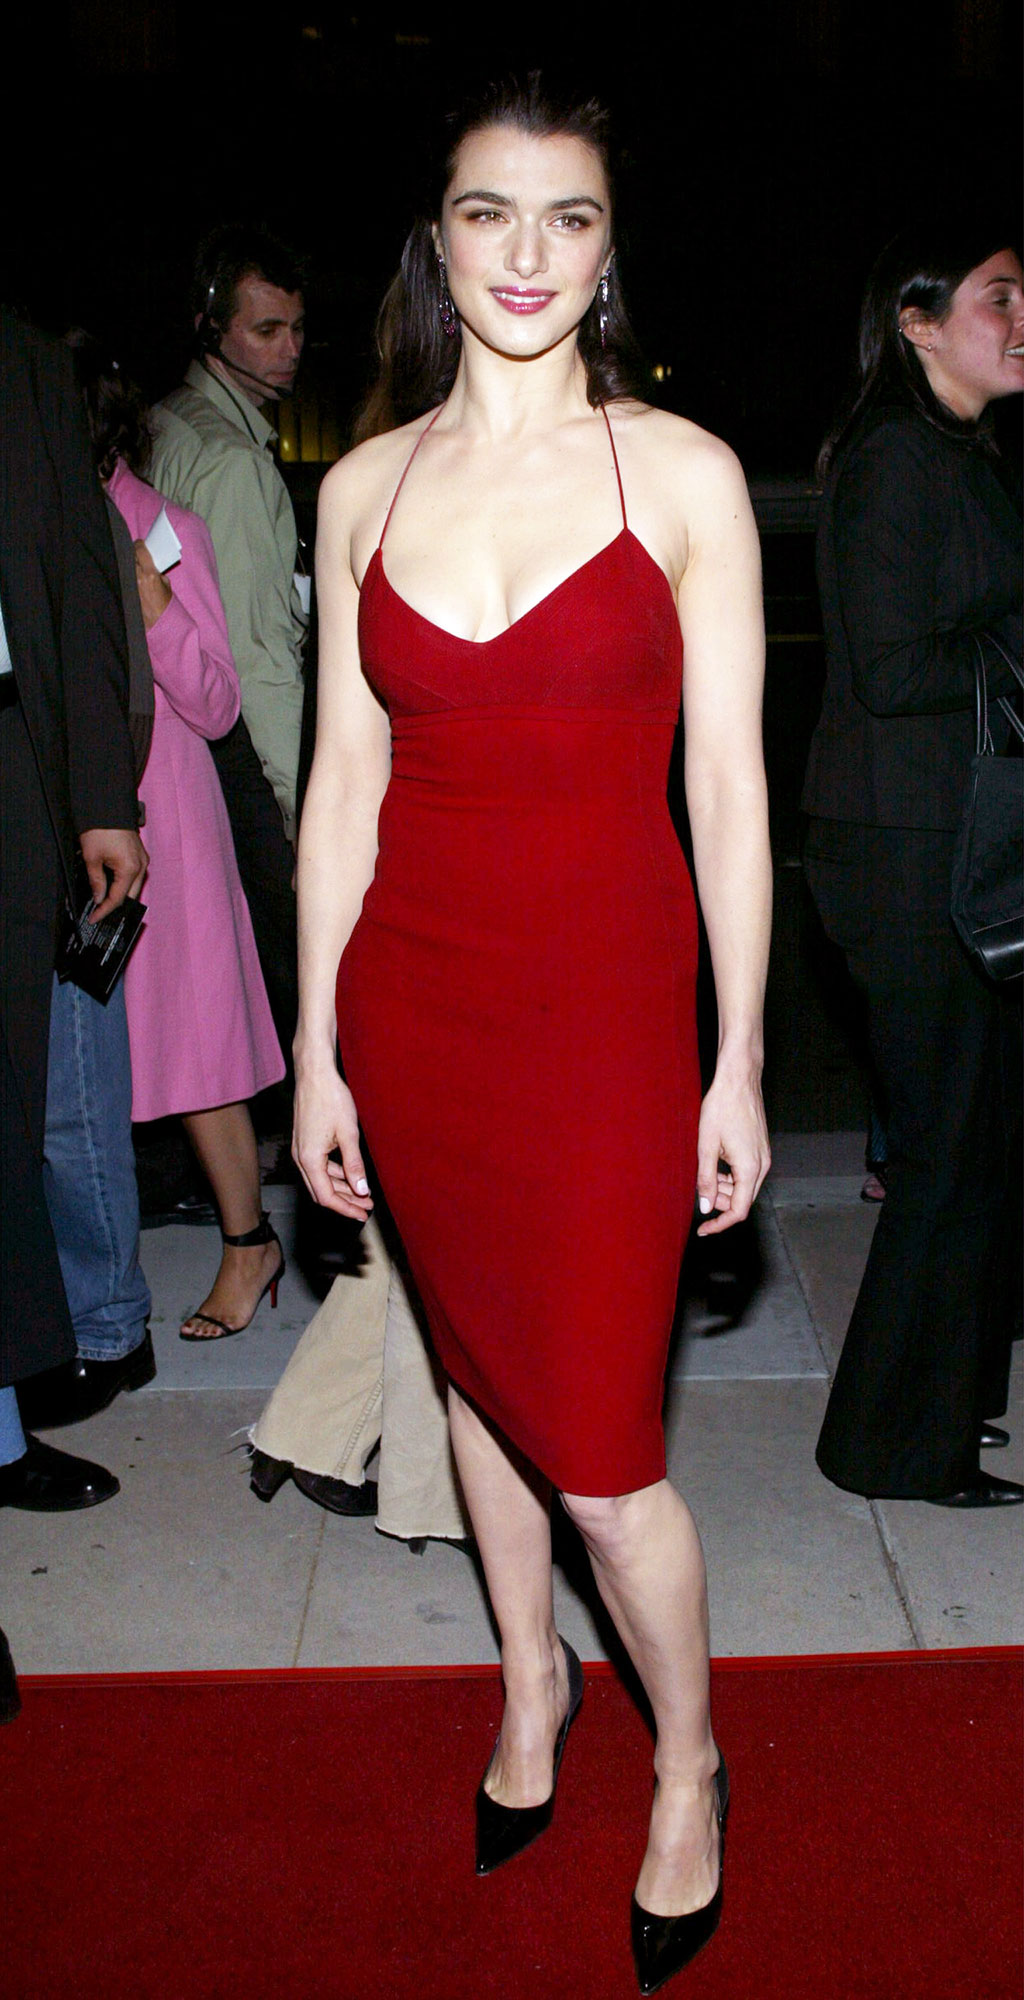 Happy Birthday, Rachel Weisz! See Her Hottest Red Carpet Looks - When attending the 2003 Confidence premiere in L.A. on April 14, 2003, the actress wore a slick form-fitting vermillion dress with thin straps that tied around her neck for an open-back look.